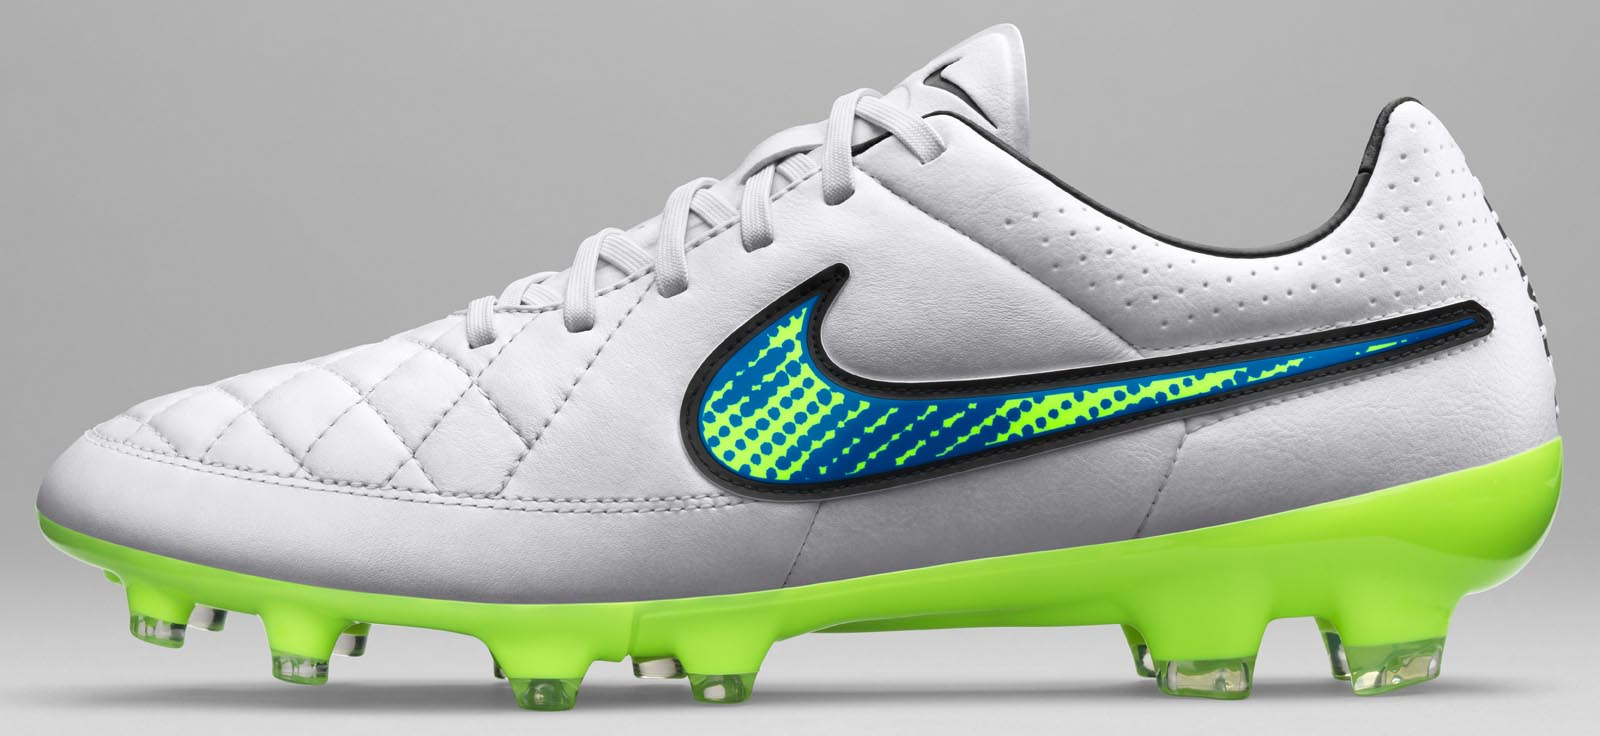 Nike Football Shoes Tiempo New